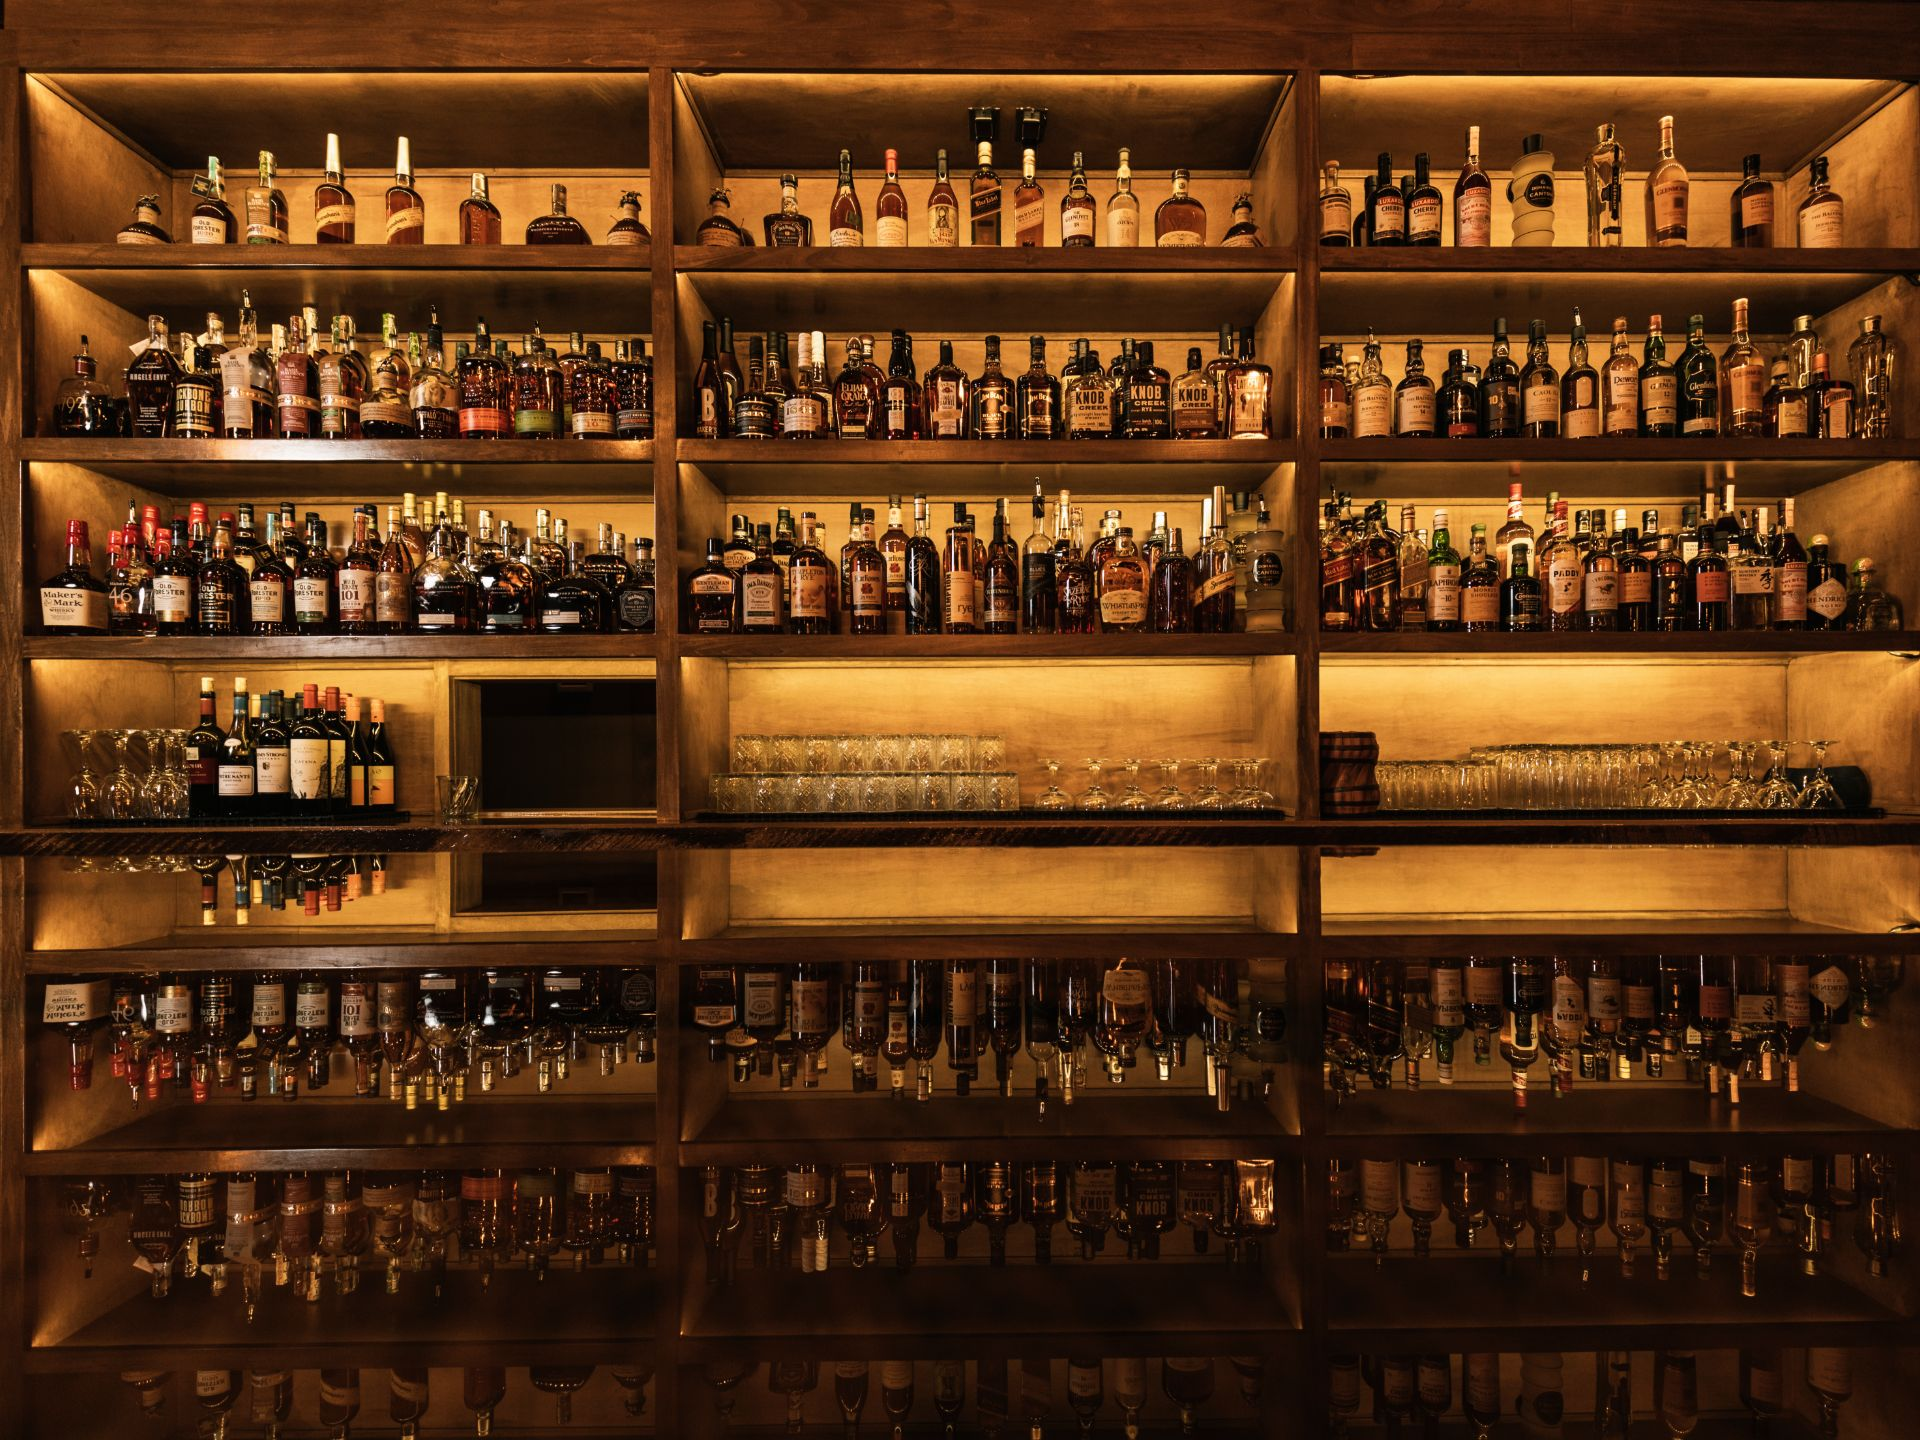 A large selection of bourbons and whiskies on a wooden shelf